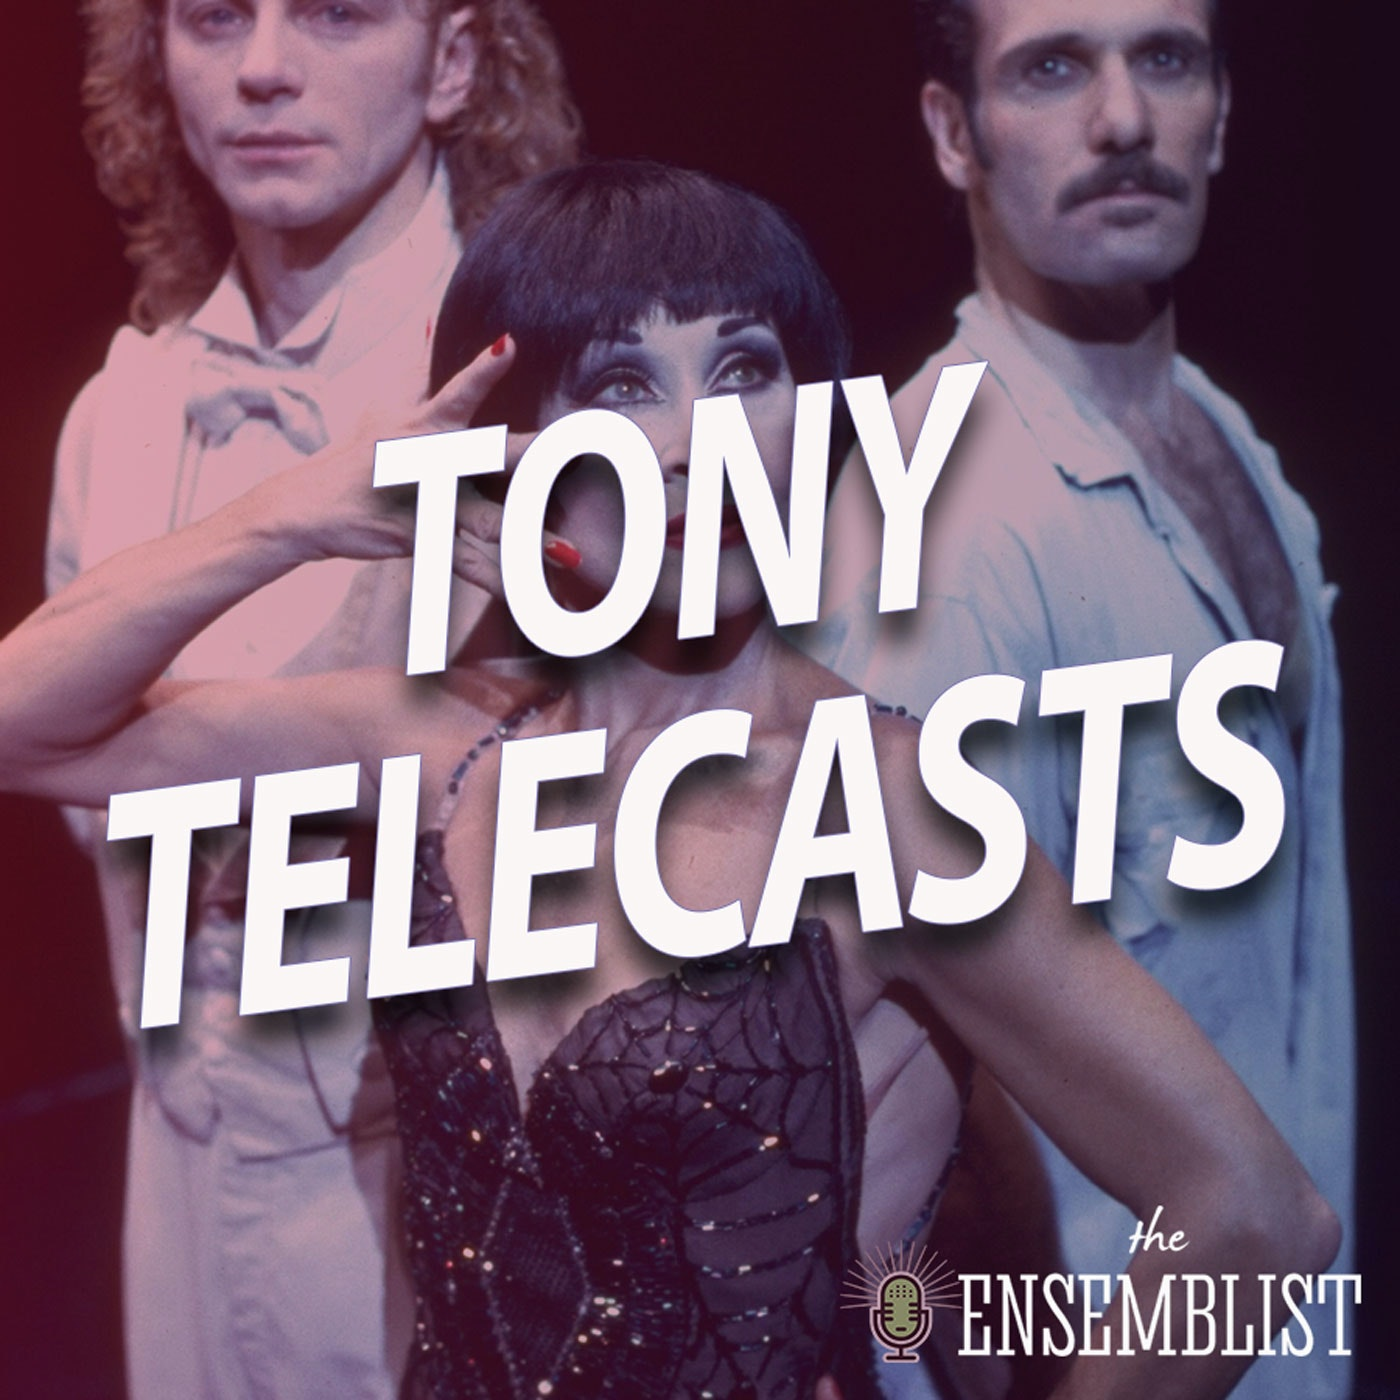 #498 - Tony Telecasts (1993 - Kiss of Spider Woman, The Who's Tommy, Blood Brothers, The Goodbye Girl - Part 2)